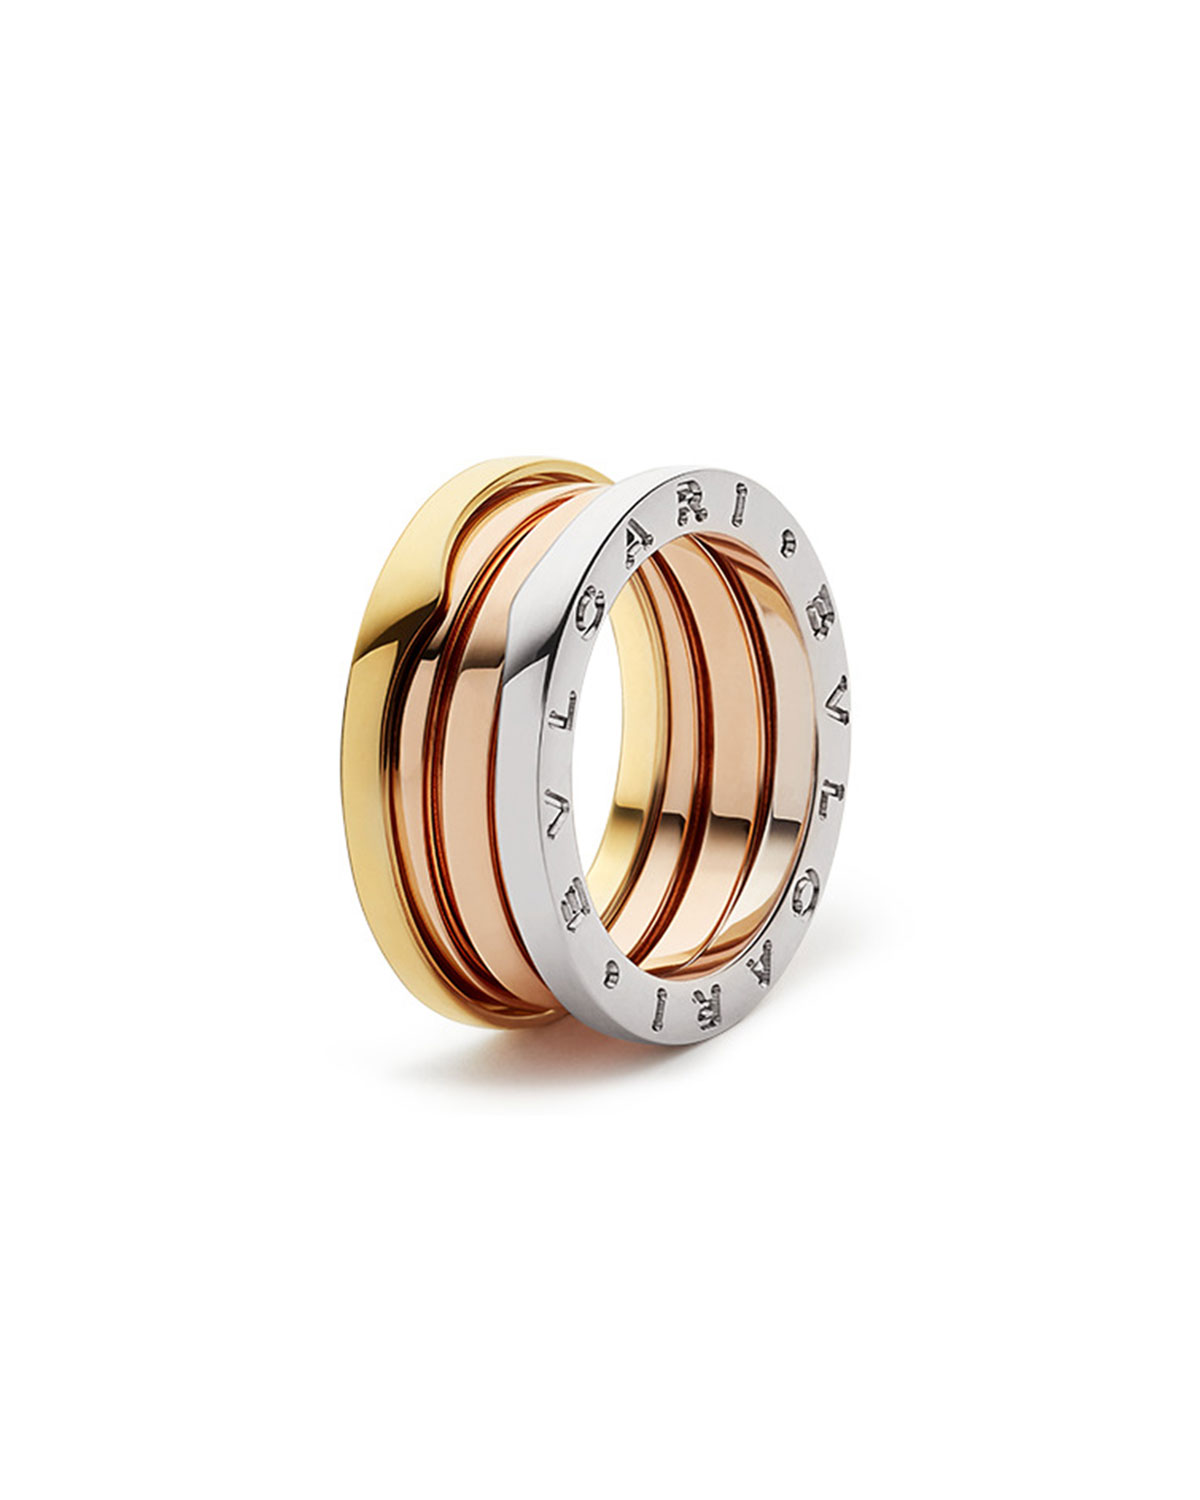 B.Zero1 Tricolor 18k Gold 3-Band Ring